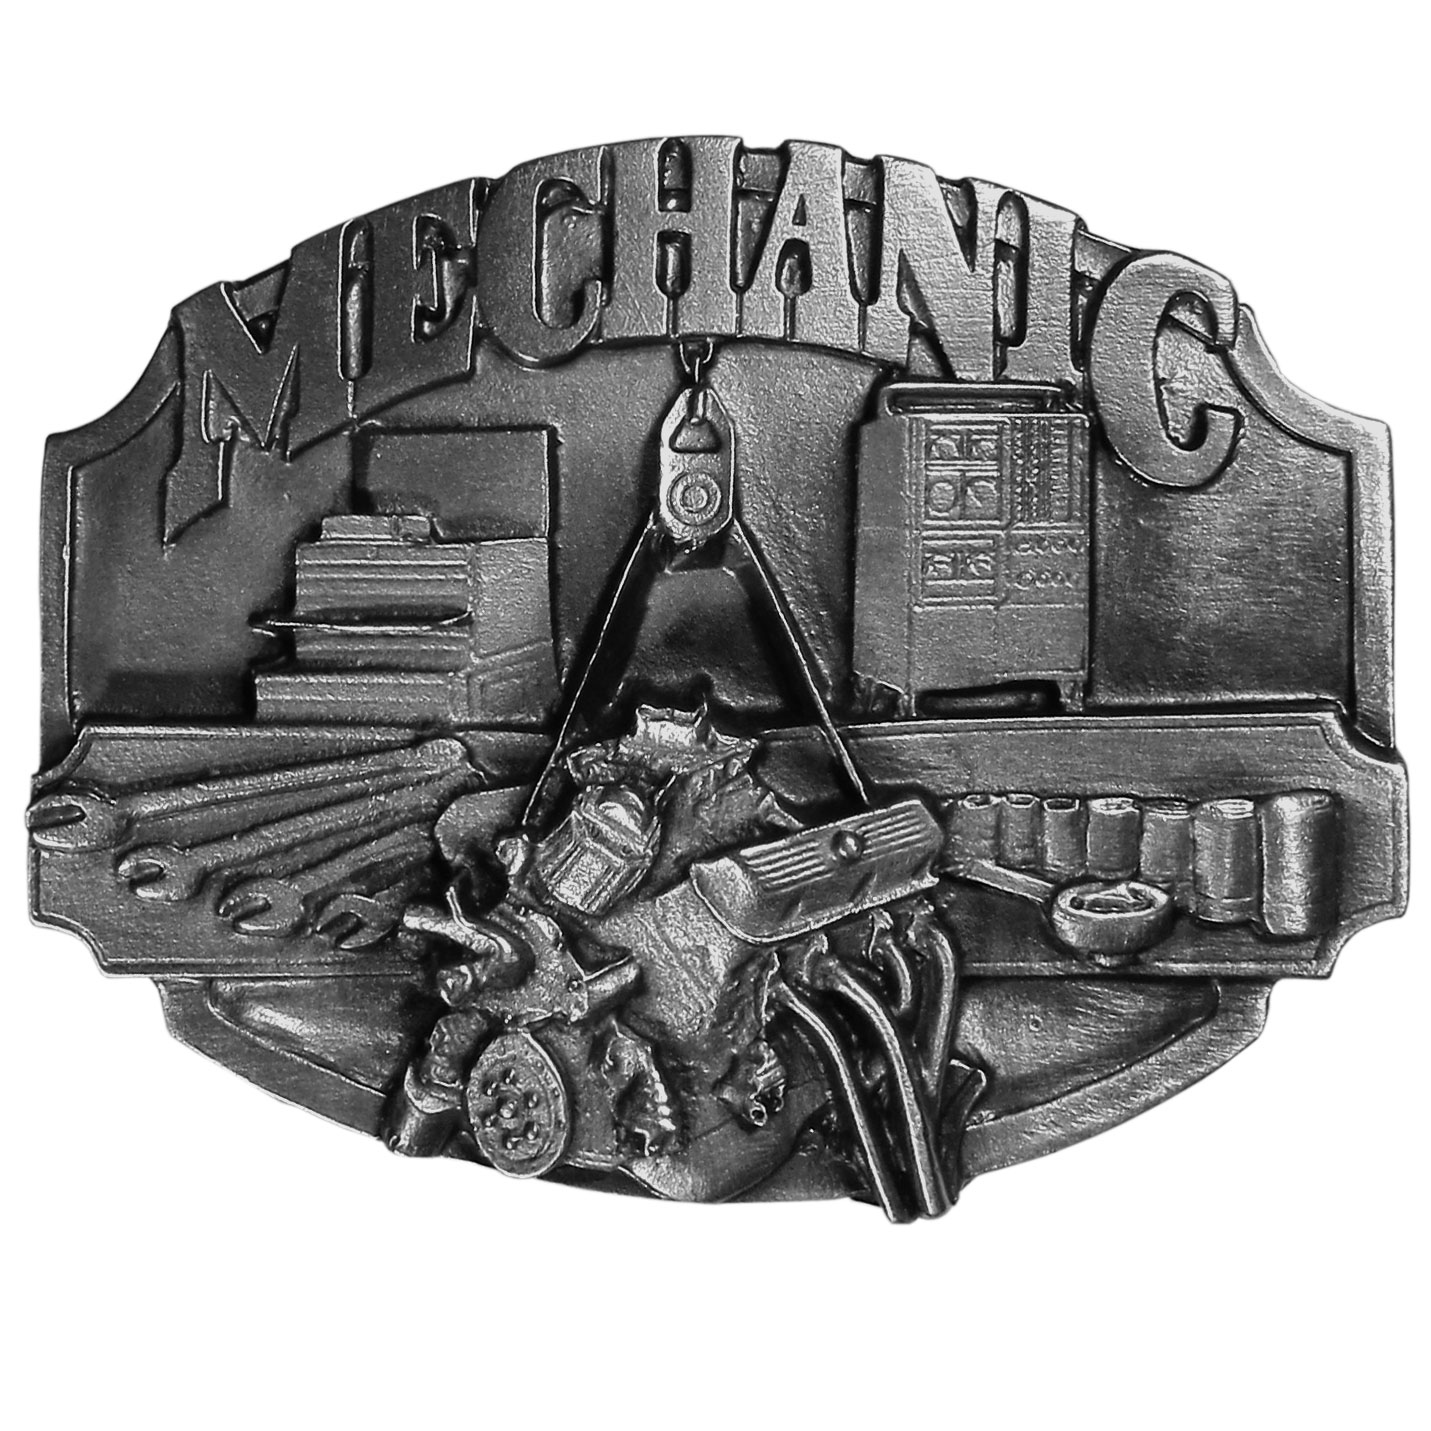 "Mechanic Antiqued Belt Buckle - ""This belt buckle celebrates the mechanic.  """"Mechanic"""" is written in bold with tools of the trade below.  On the back are the words, """"Mechanics keep the world moving"""".  Finely sculpted and intricately designed belt buckle. Our unique designs often become collector's items."""